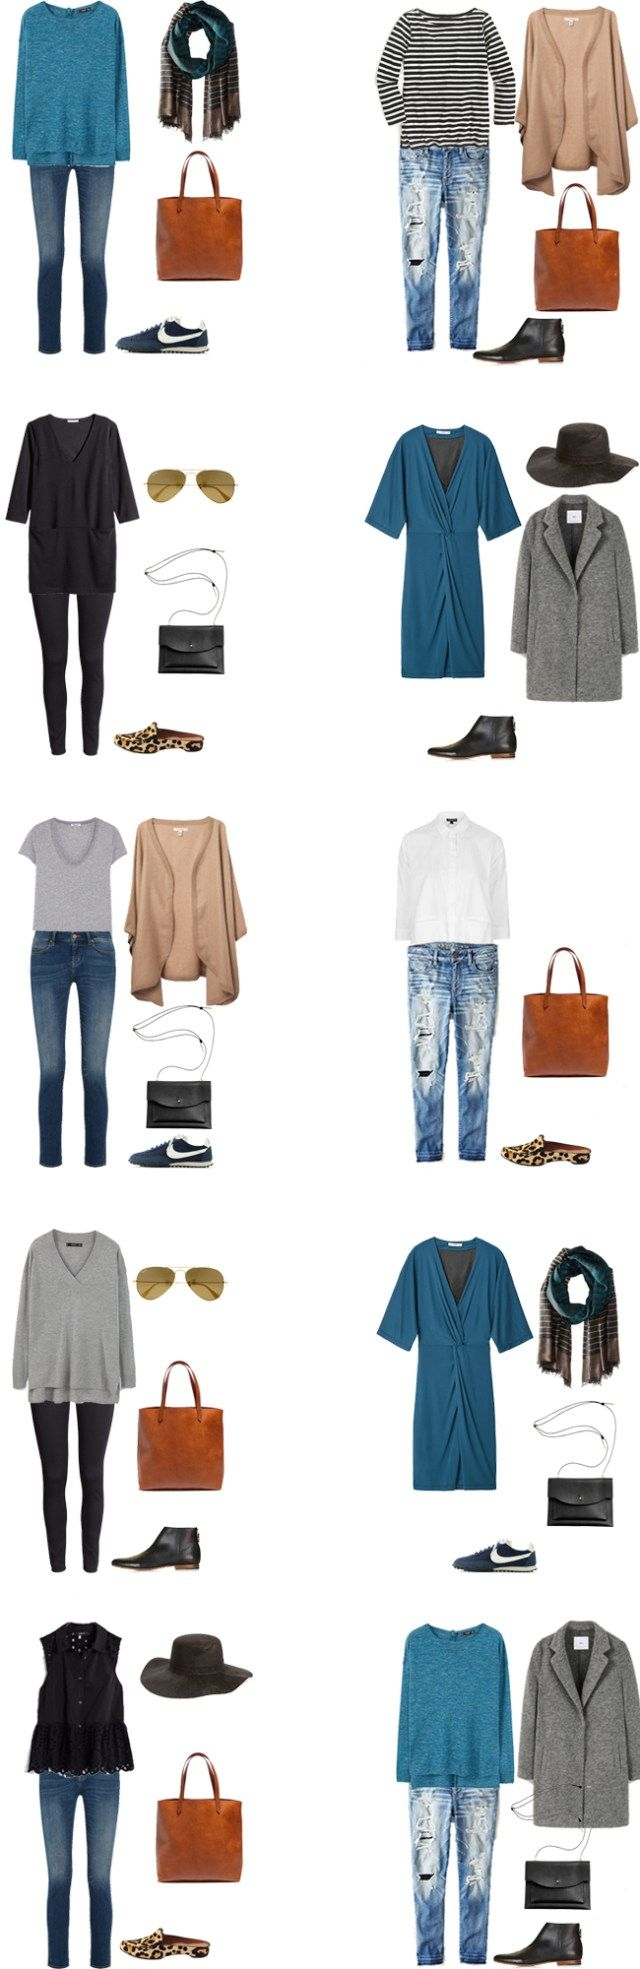 livelovesara - My life in a blog by Sara Watson. What wear in Amsterdam. Outfits possibilities 1. Fall 2016